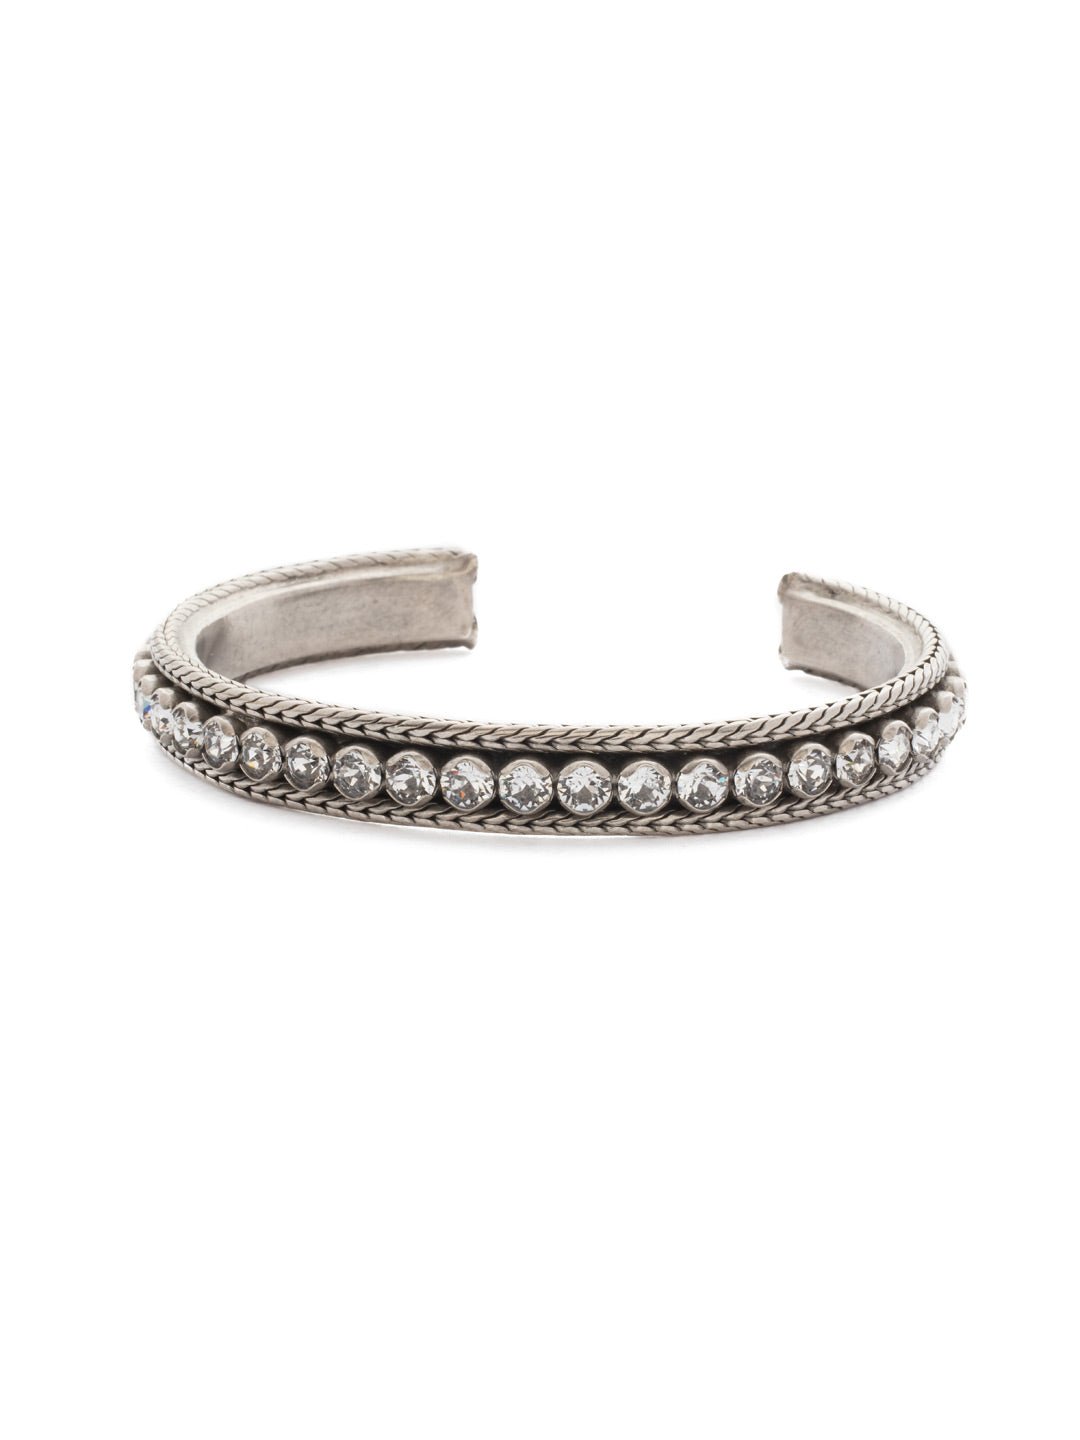 Channeling Chic Cuff Bracelet - BDM6ASCRY